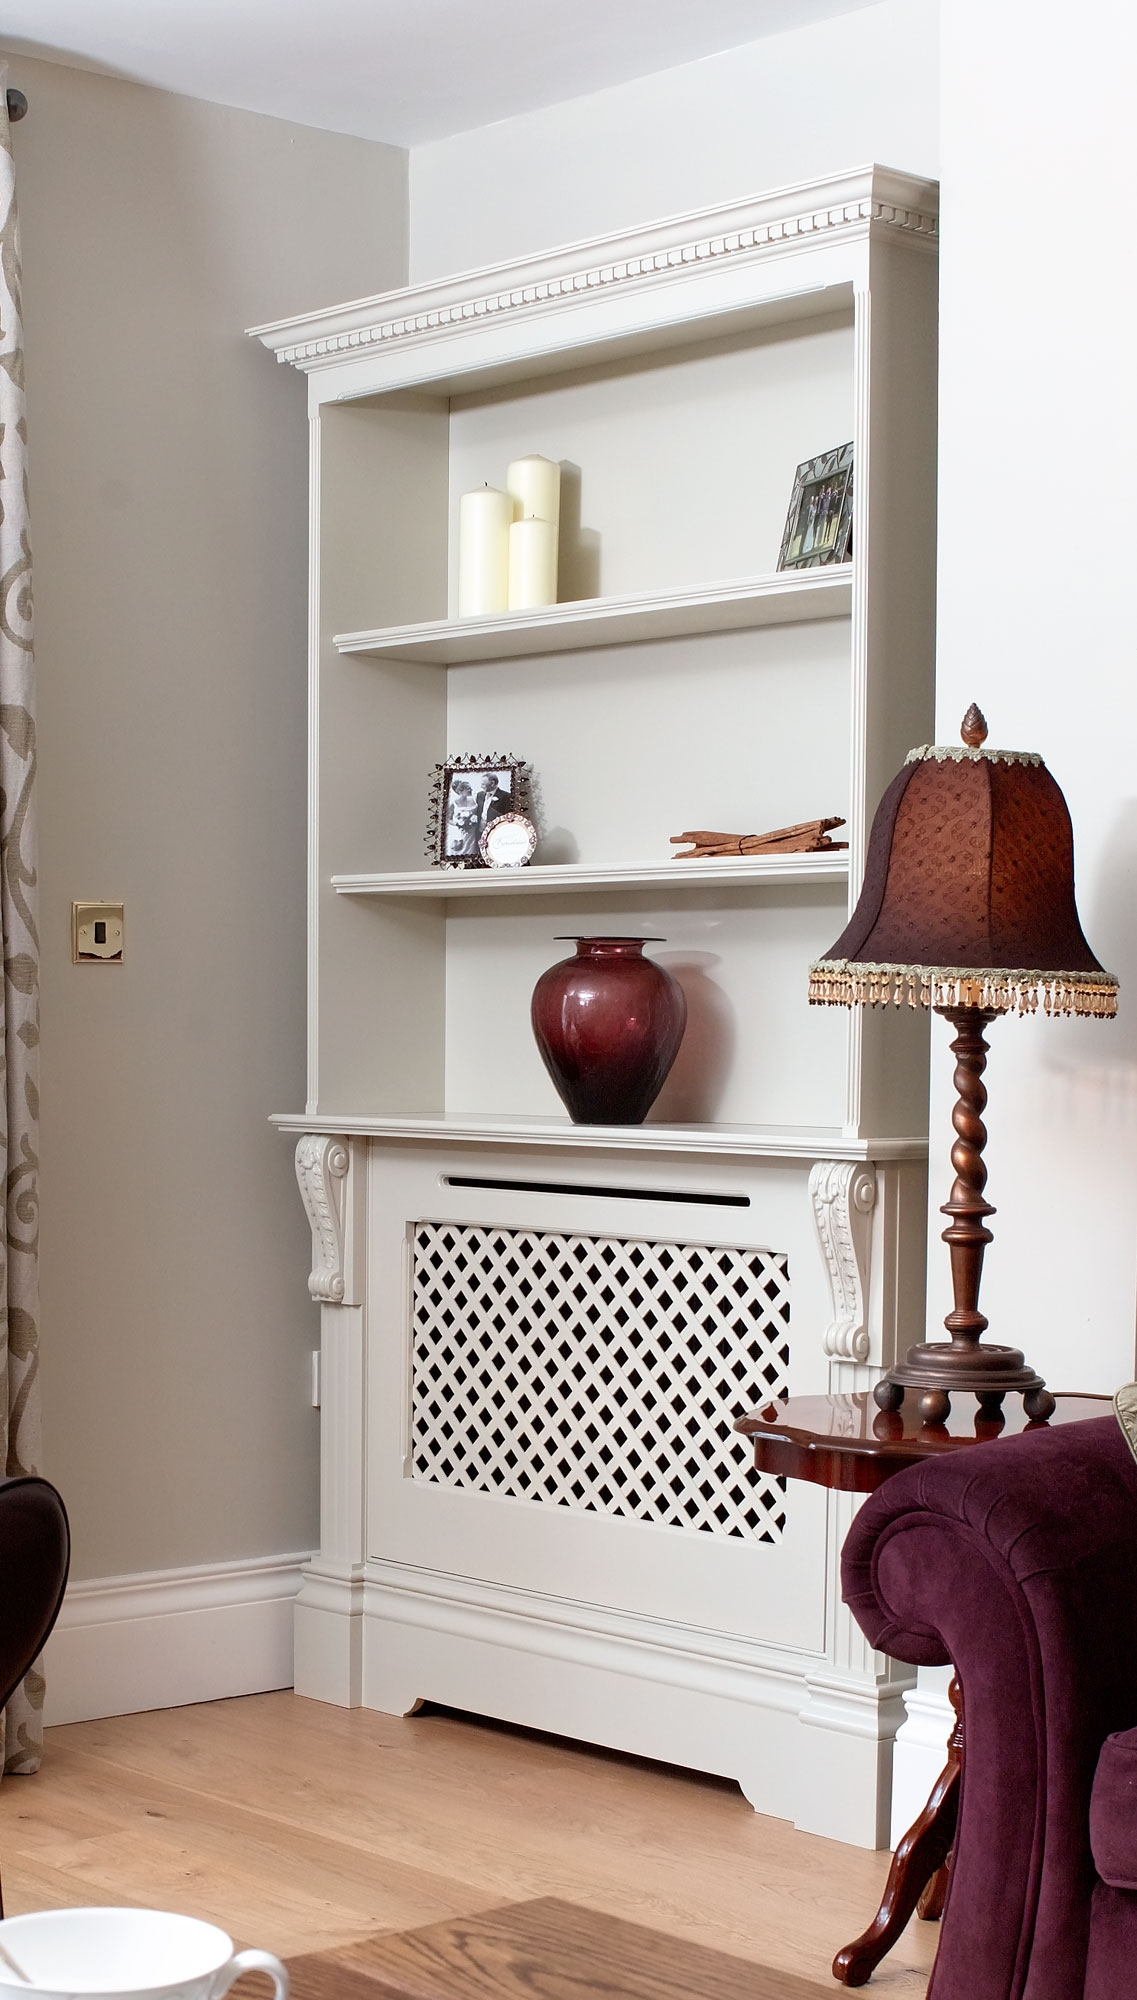 Modern Interior Decorating With Colorful Radiators And Attractive For Radiator Covers And Bookcases (Image 14 of 15)